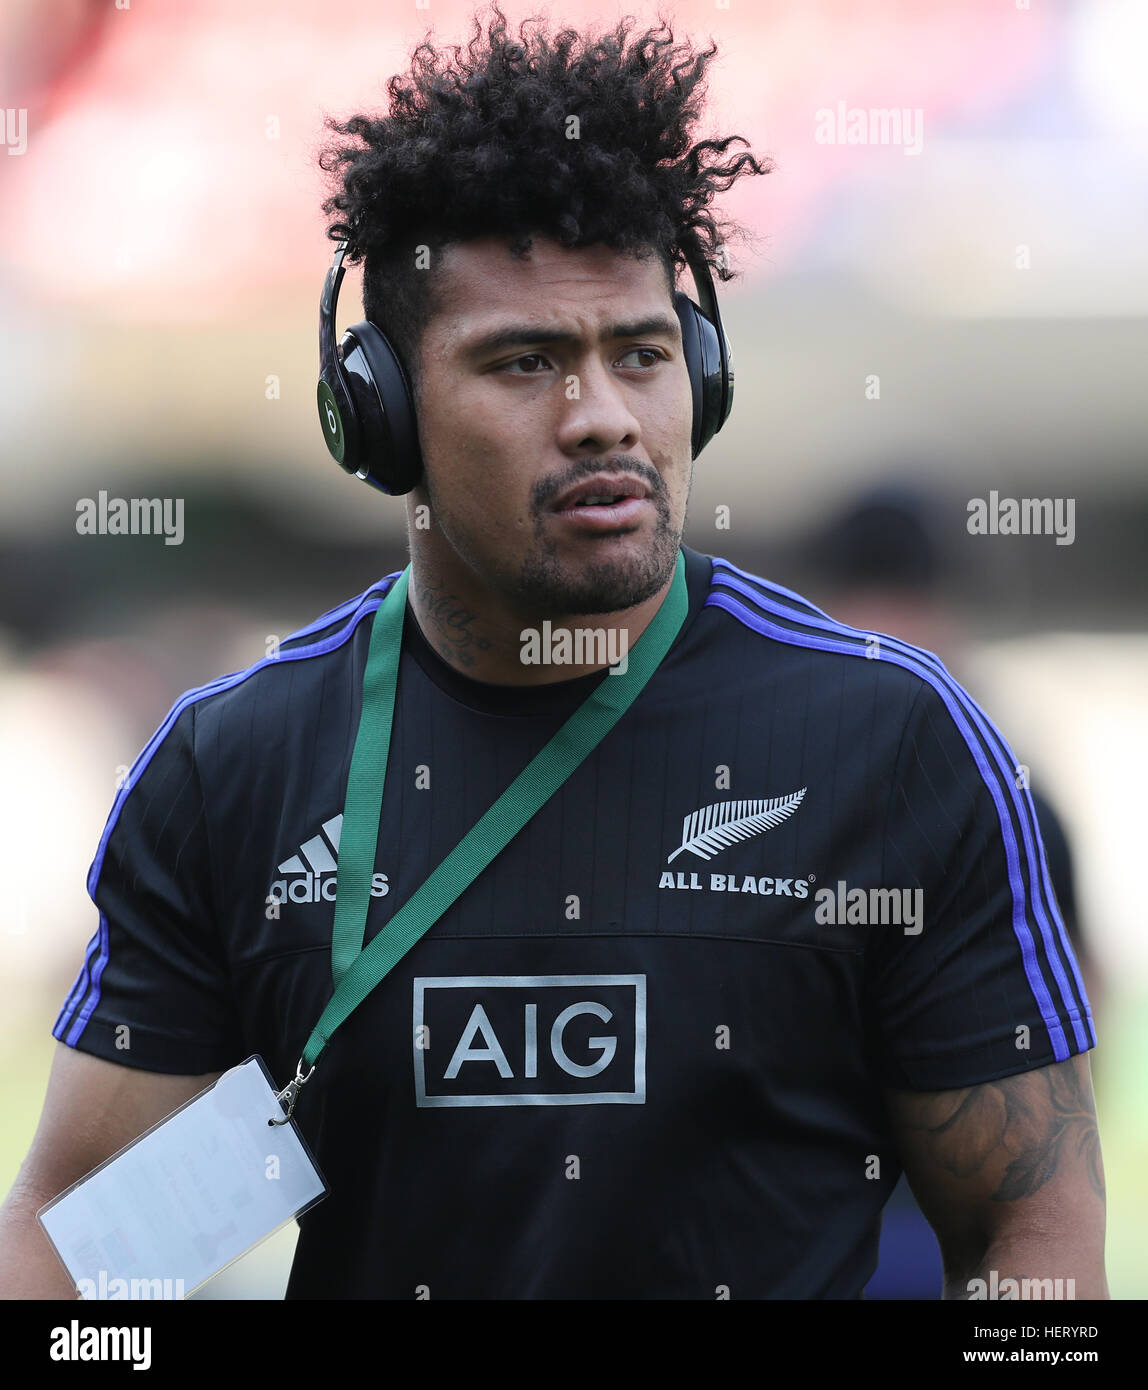 DURBAN, SOUTH AFRICA - OCTOBER 08: Ardie Savea of New Zealand during the The Rugby Championship match between South - Stock Image